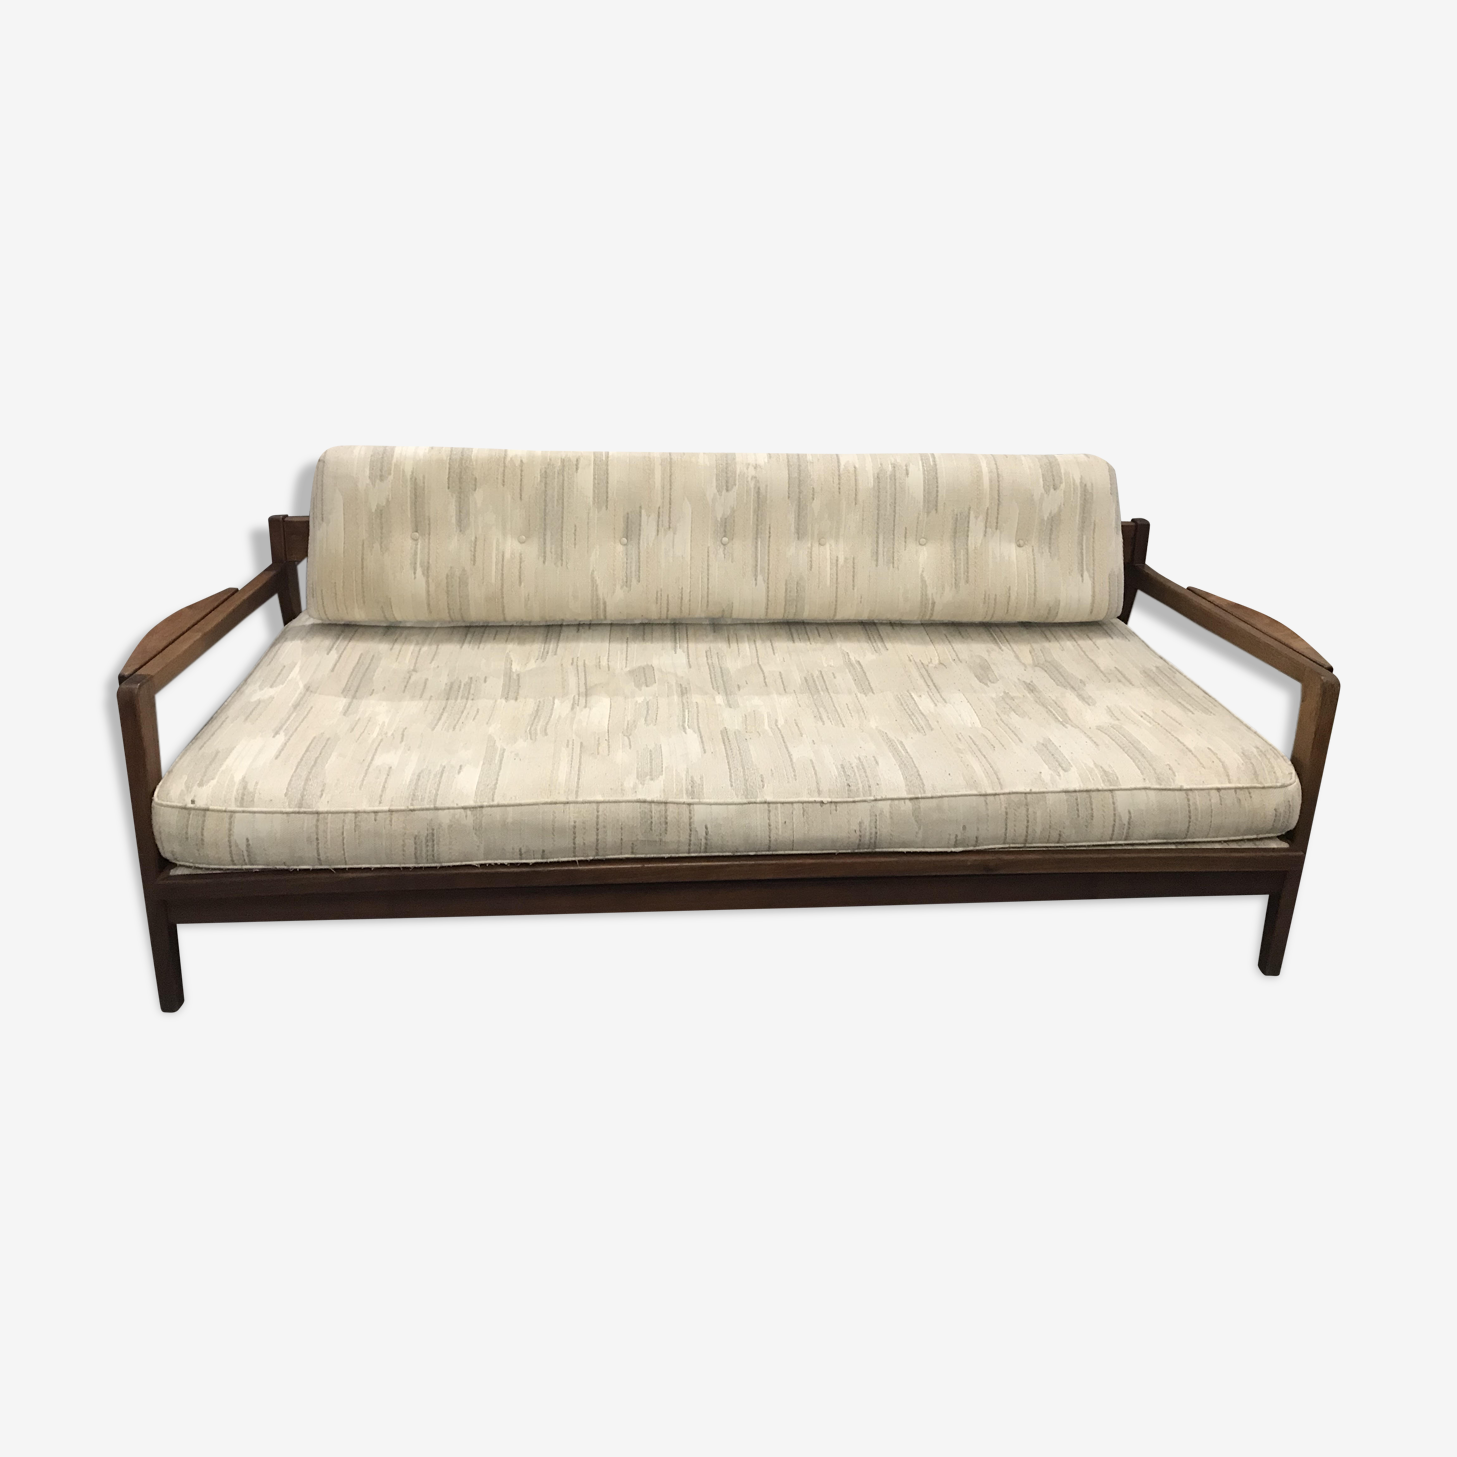 Jens Risom daybed 1960